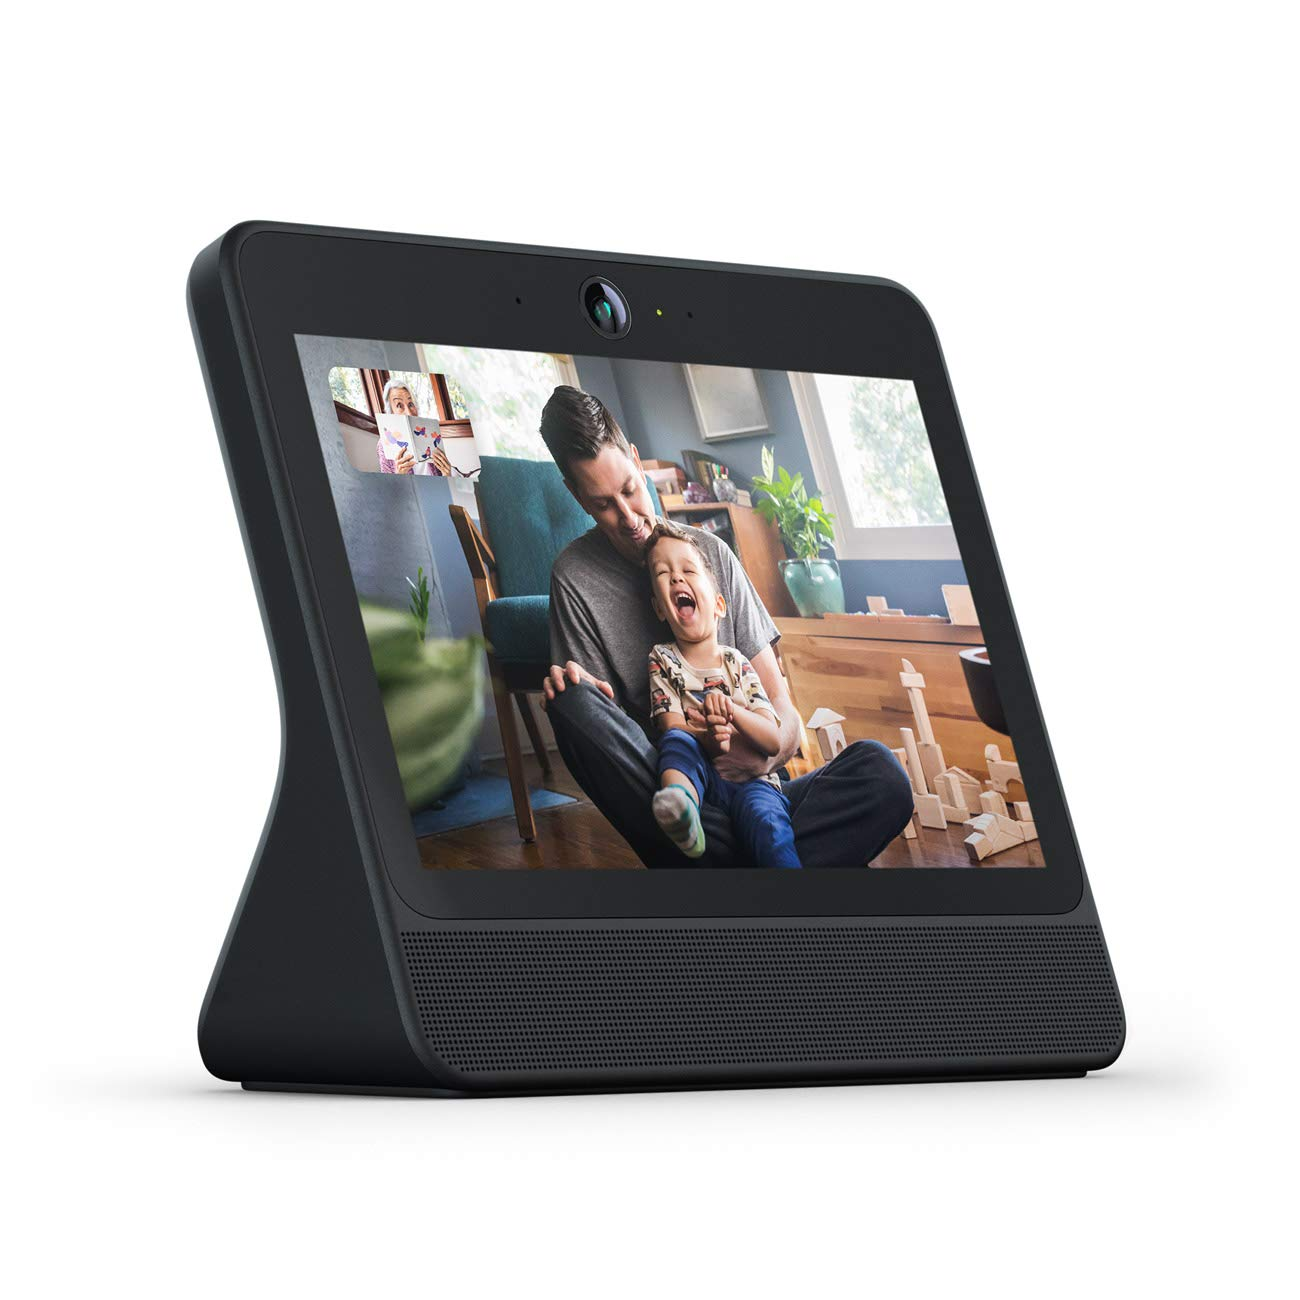 "Portal from Facebook. Smart, Hands-Free Video Calling with Alexa Built-in [10.1"" Display] – Black"